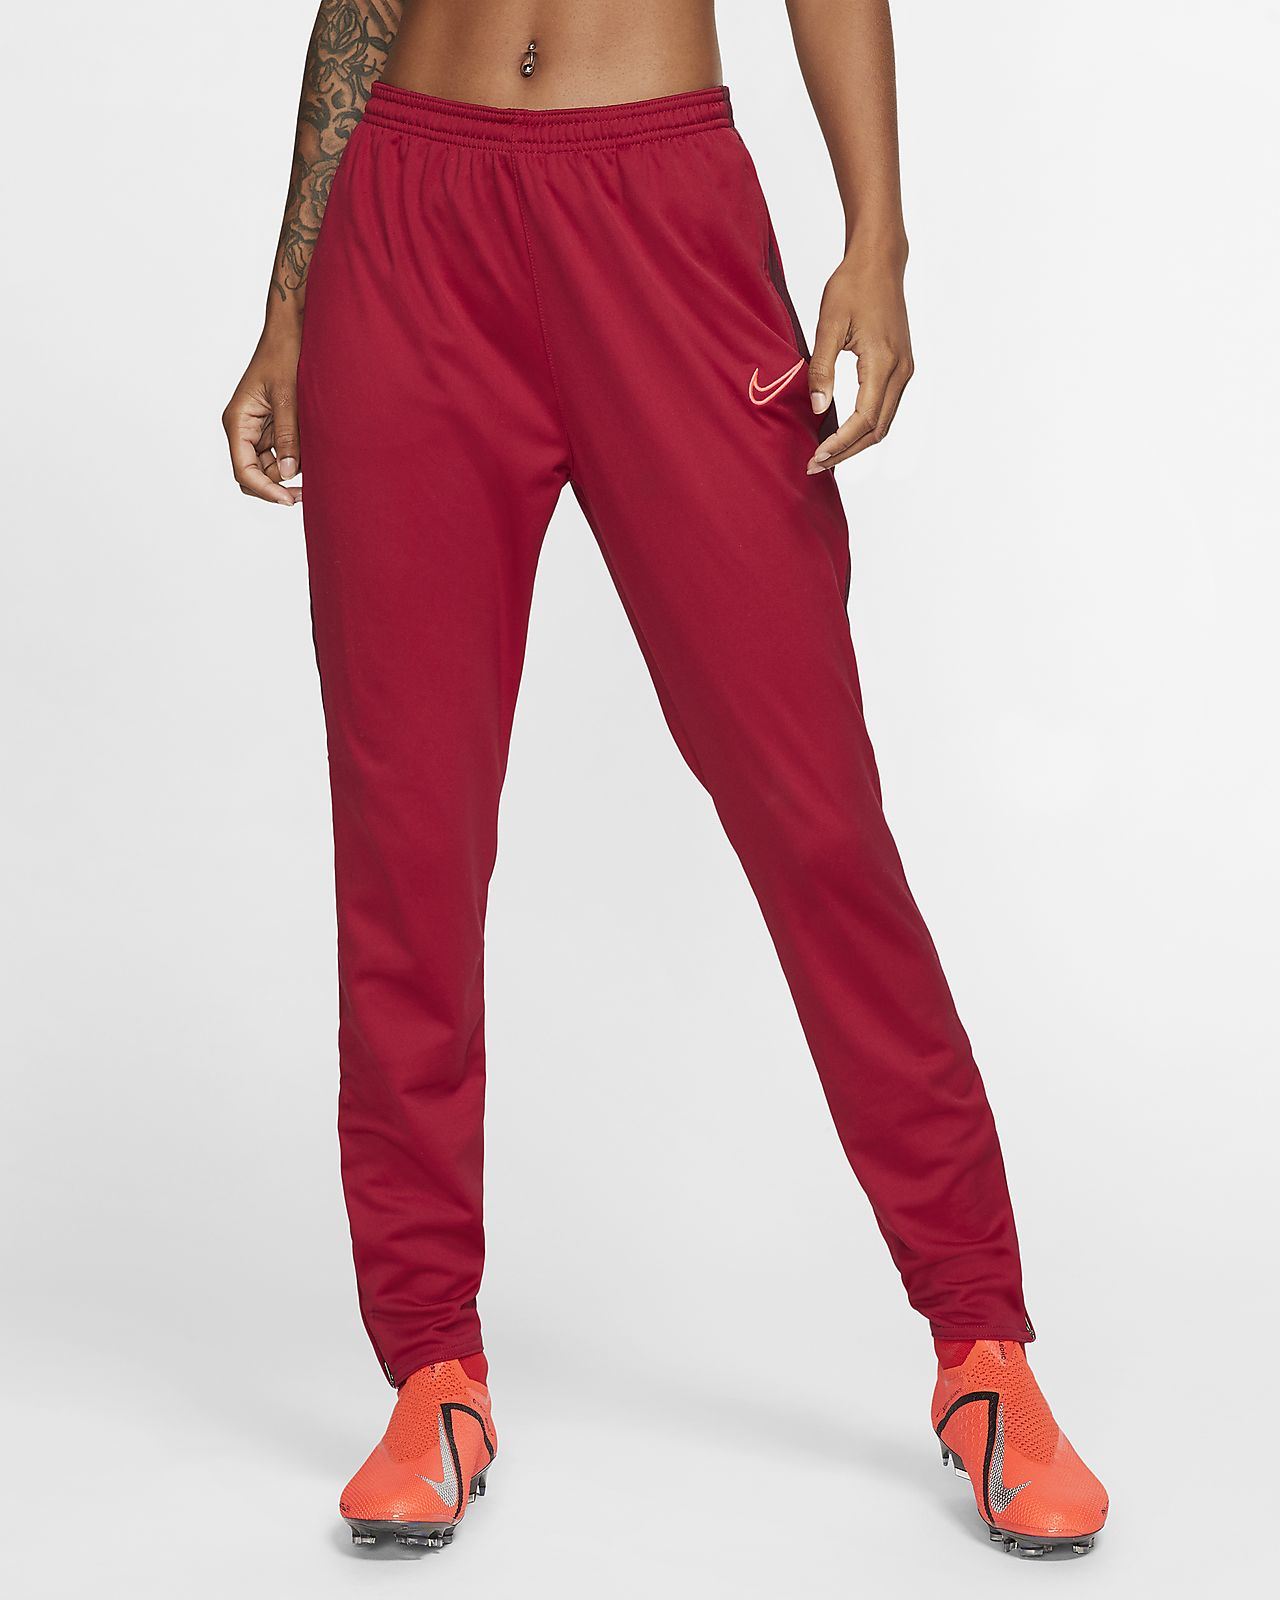 Nike Dri-FIT Academy Women's Soccer Pants